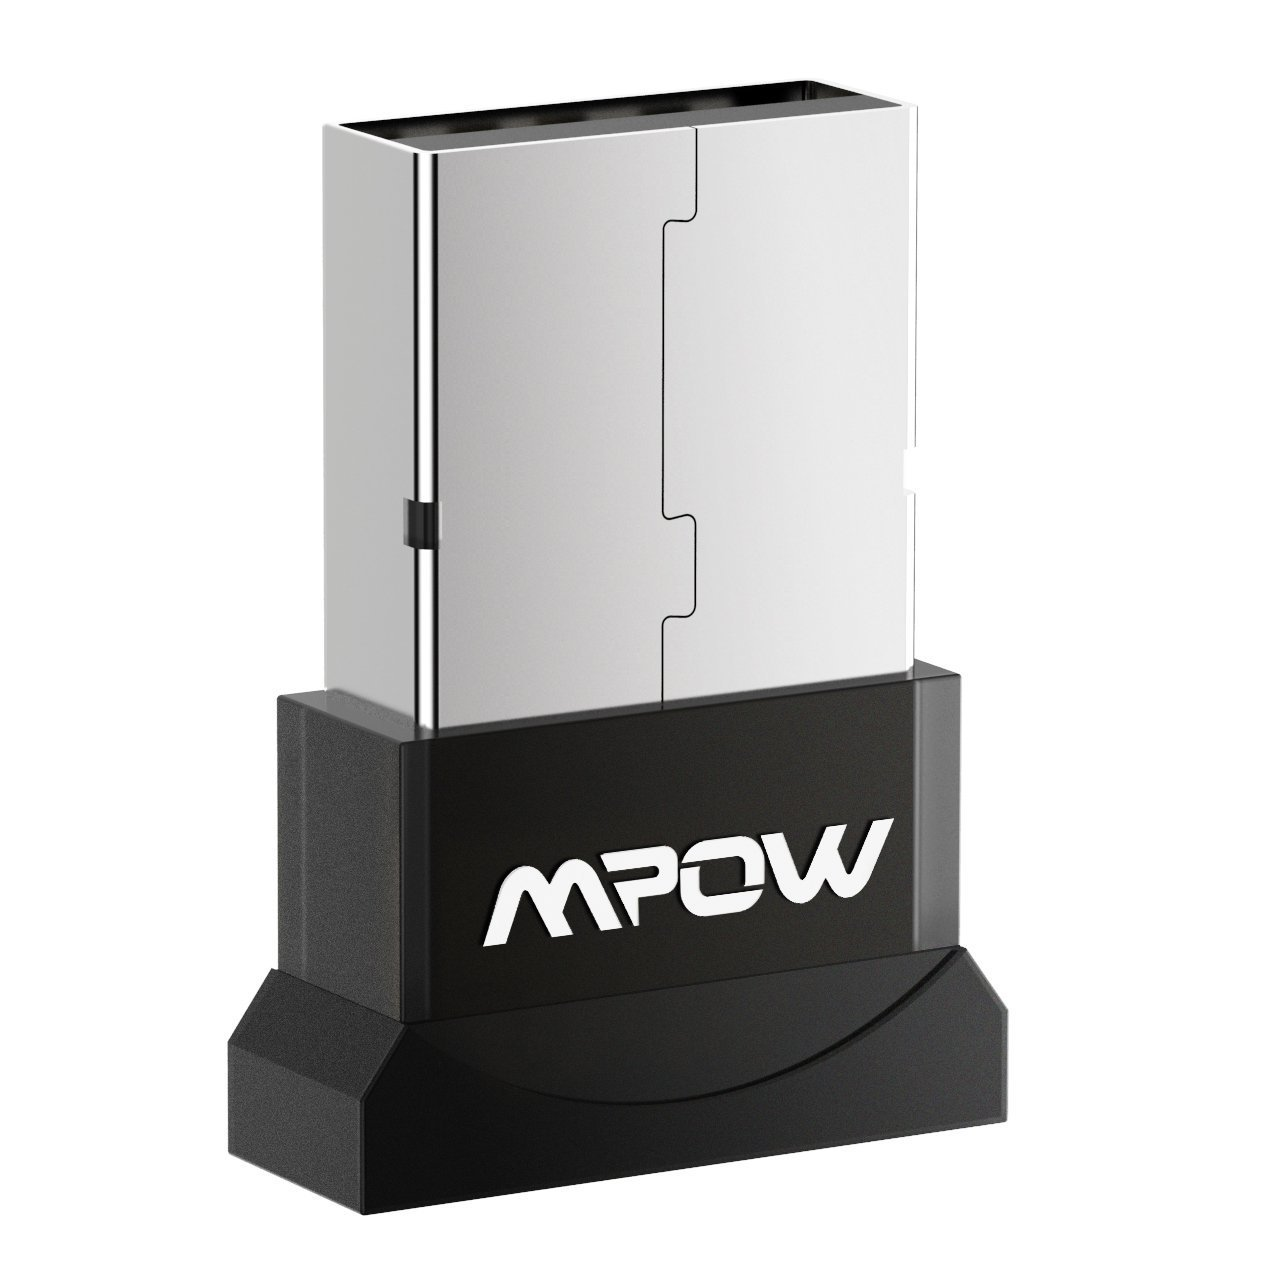 Mpow Bluetooth 4 0 USB Dongle Adapter, Bluetooth Transmitter Receiver  Supports Windows 10, 8, 7, Vista XP 32/64 Bit Laptop PC for Bluetooth  Speaker,